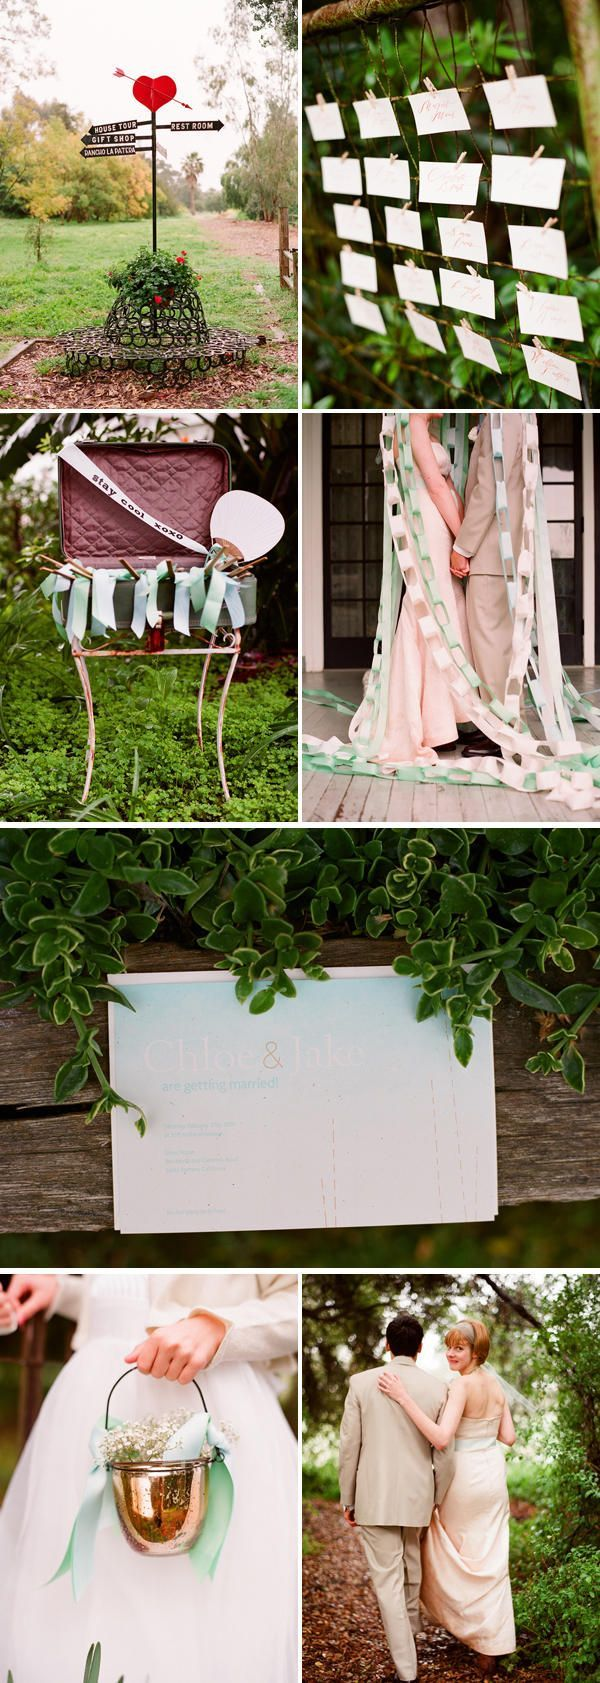 Playful Wedding Ideas II